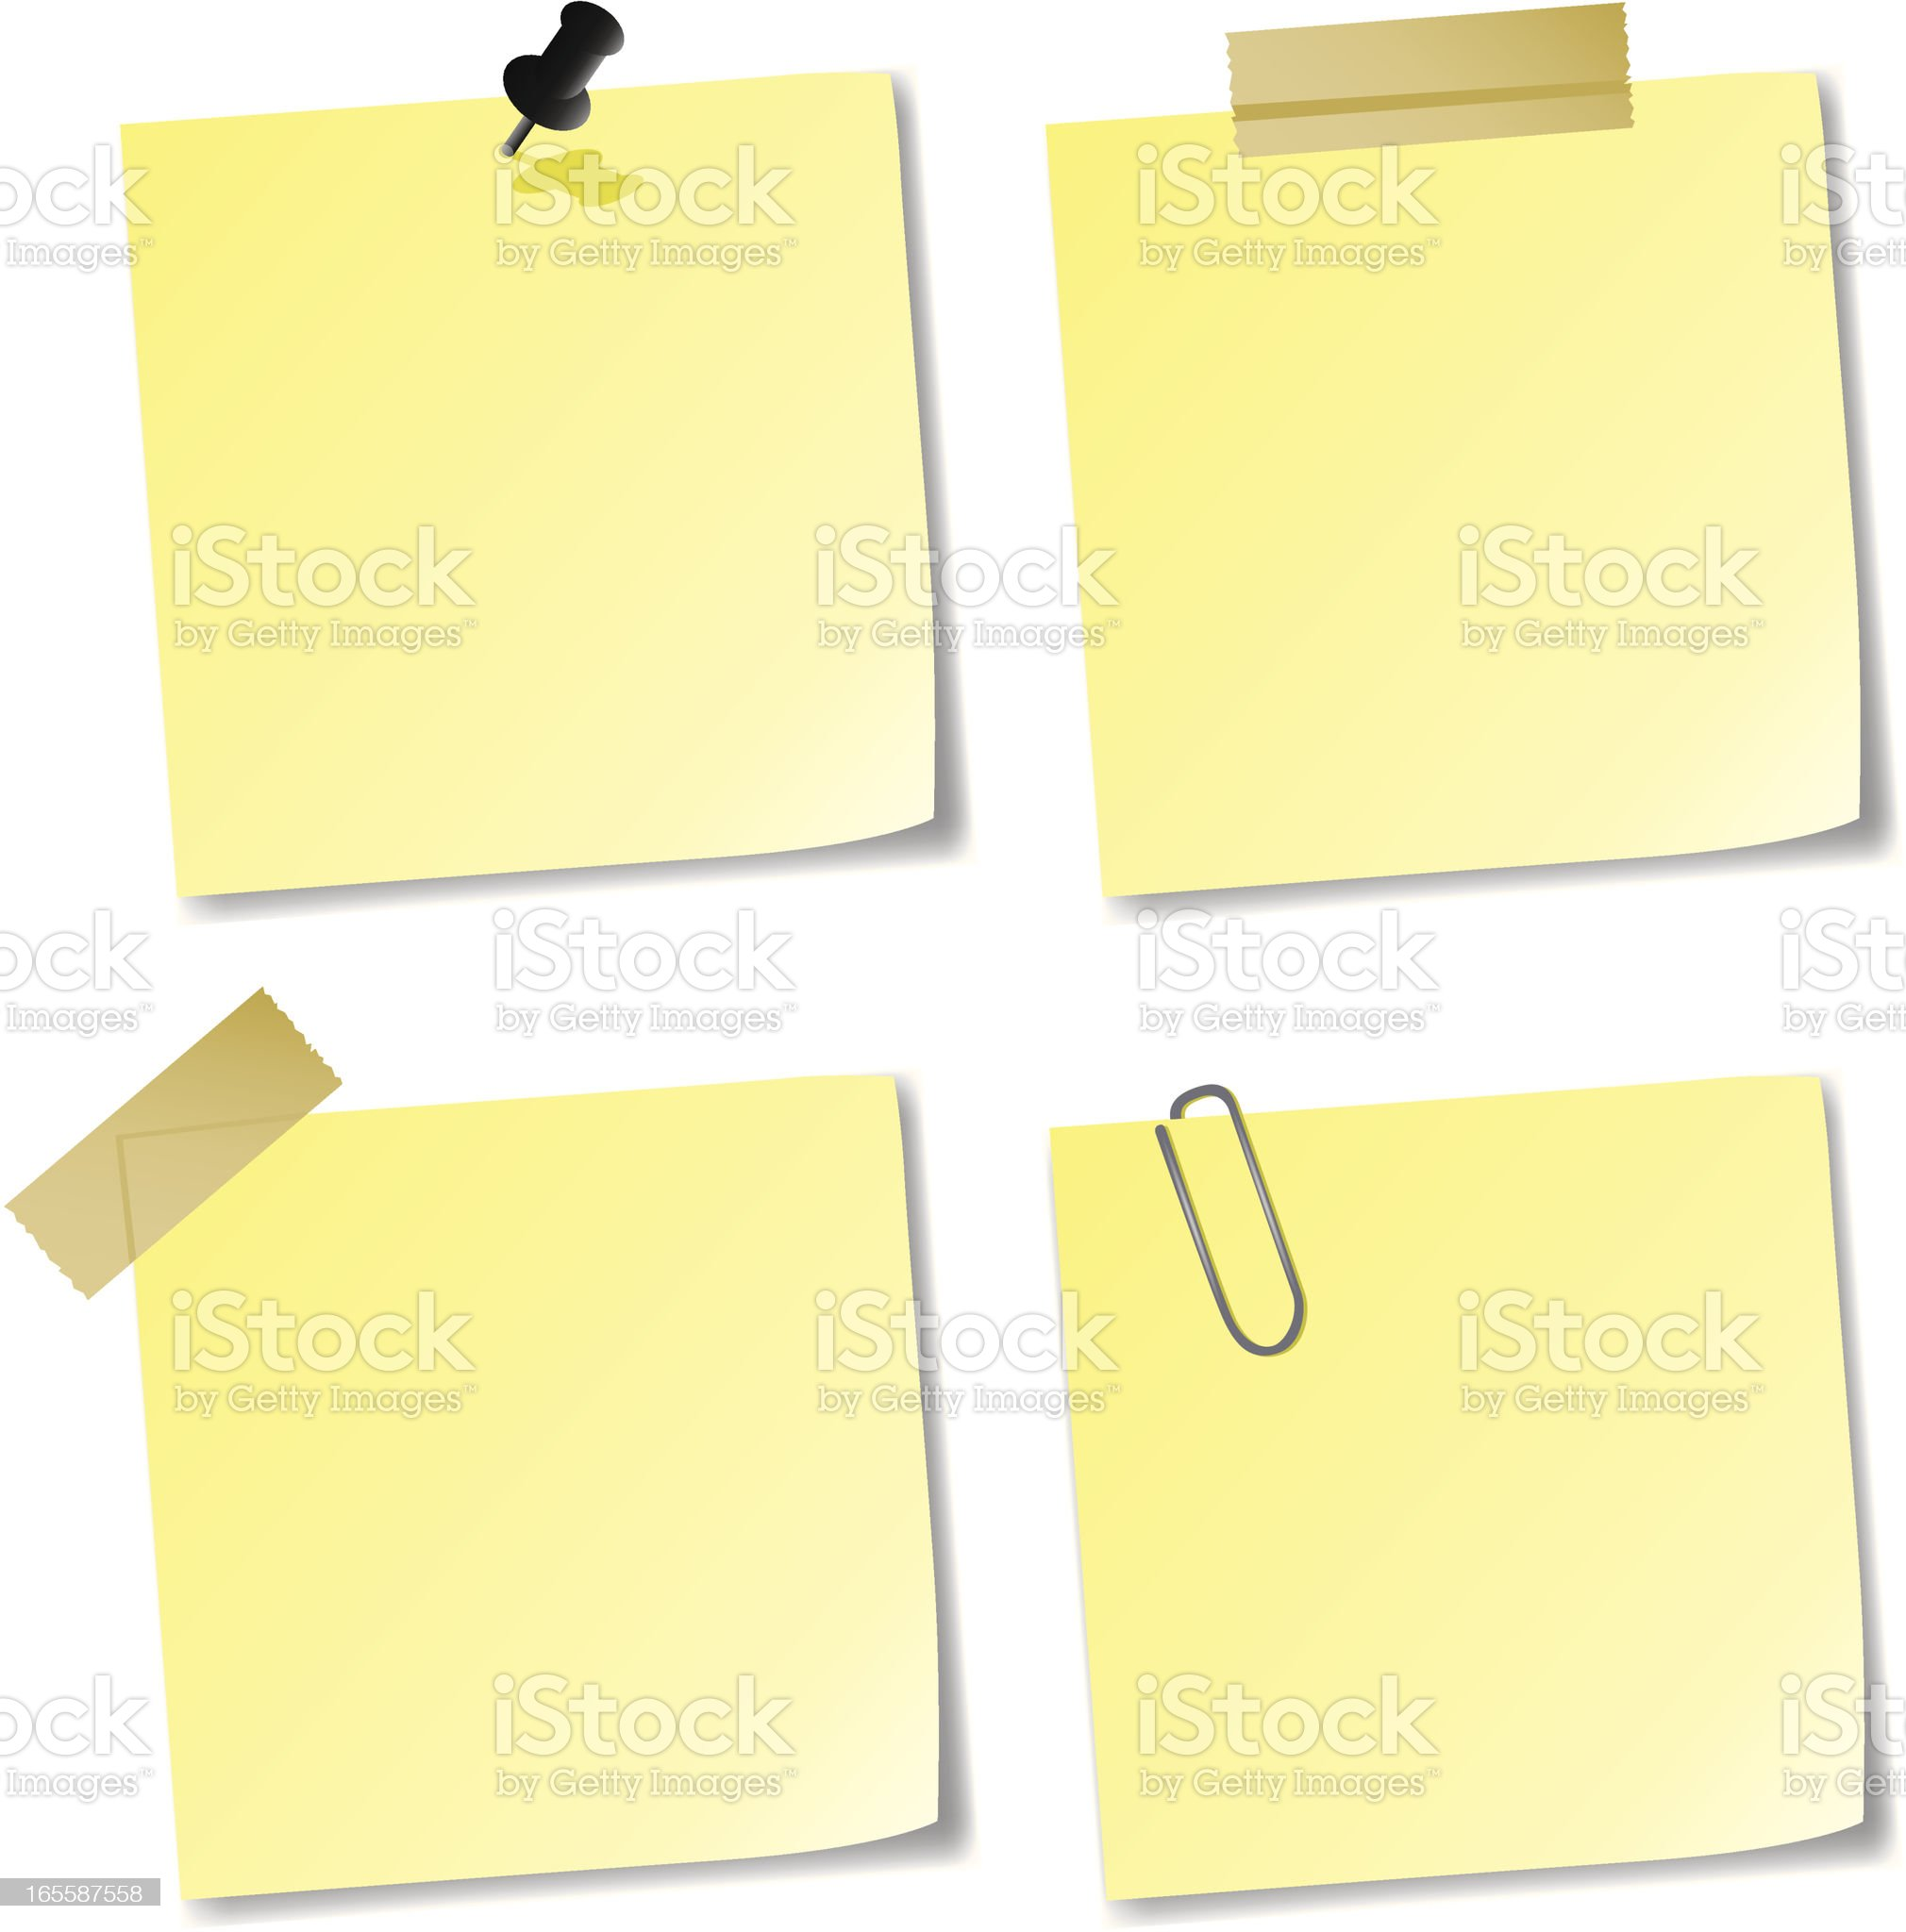 Yellow sticky notes royalty-free stock vector art